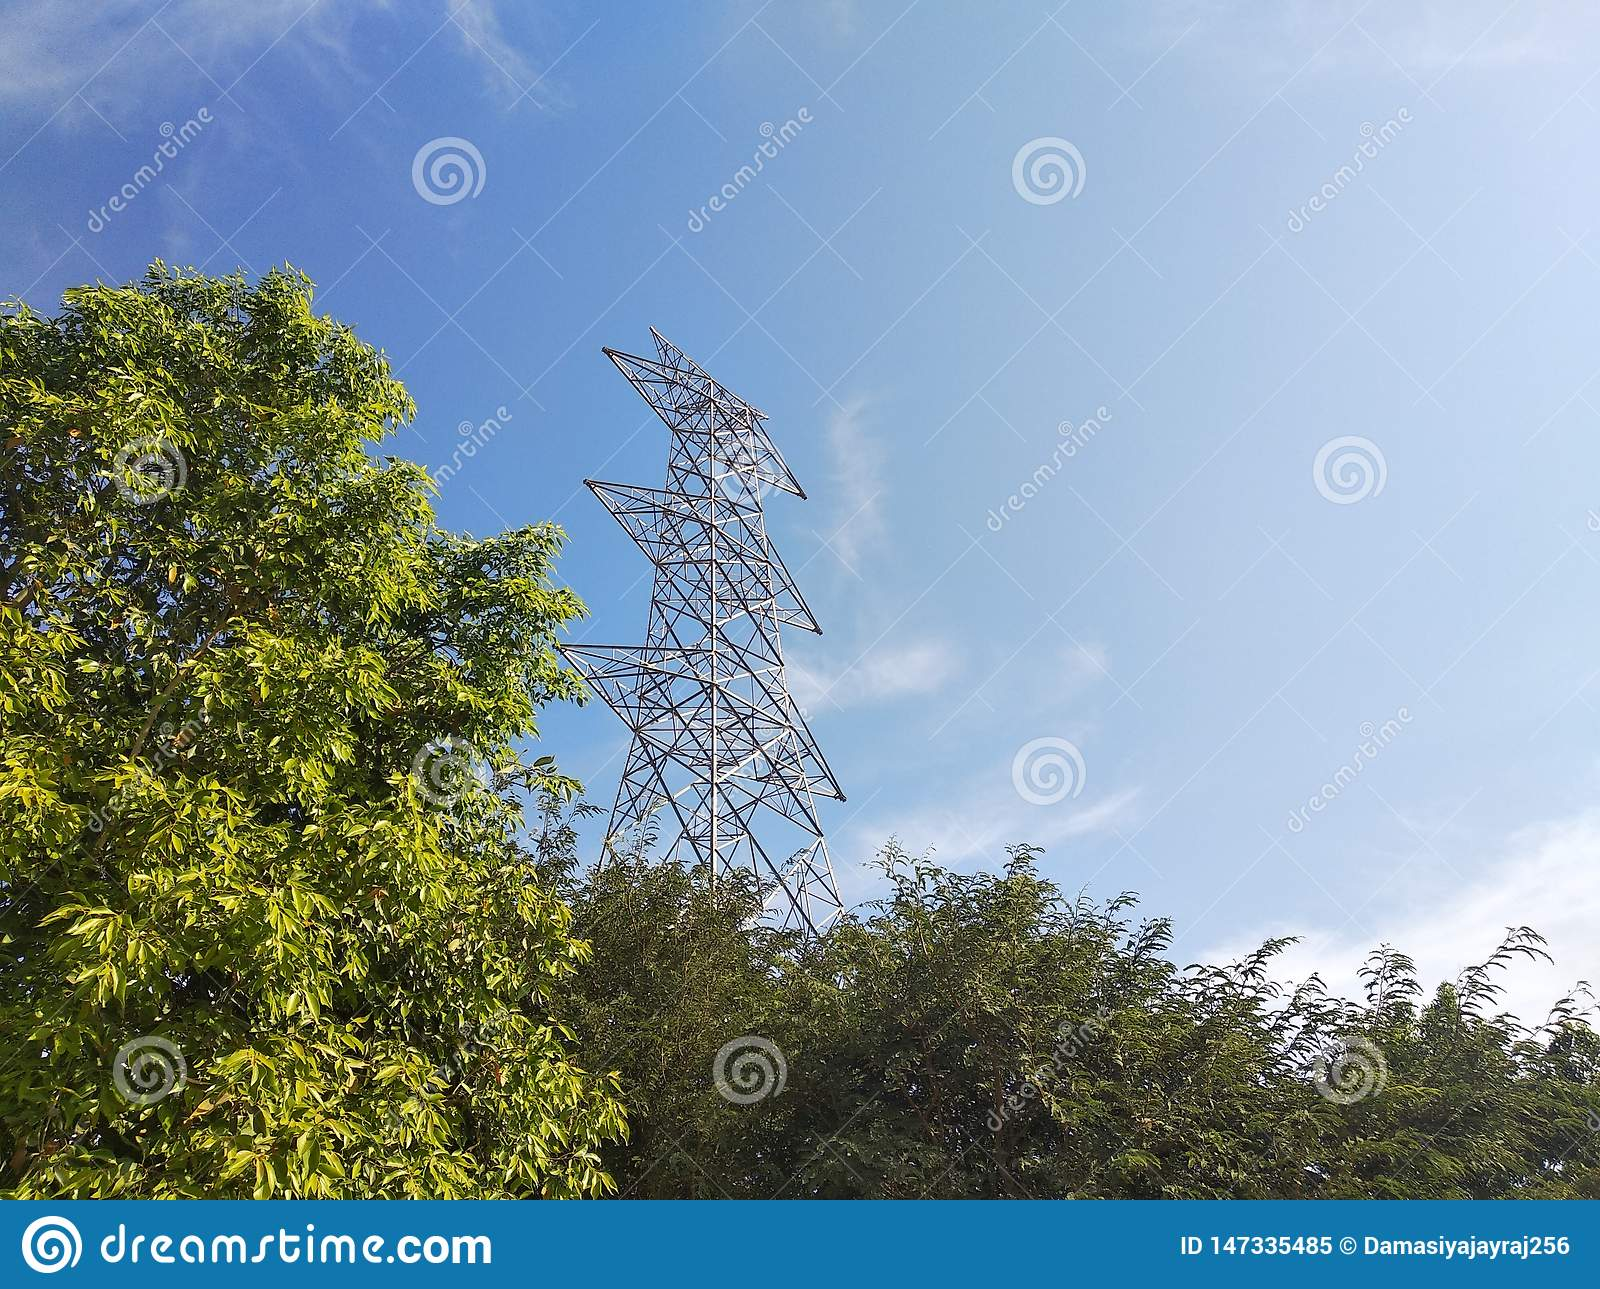 Beautiful background with tower and trees